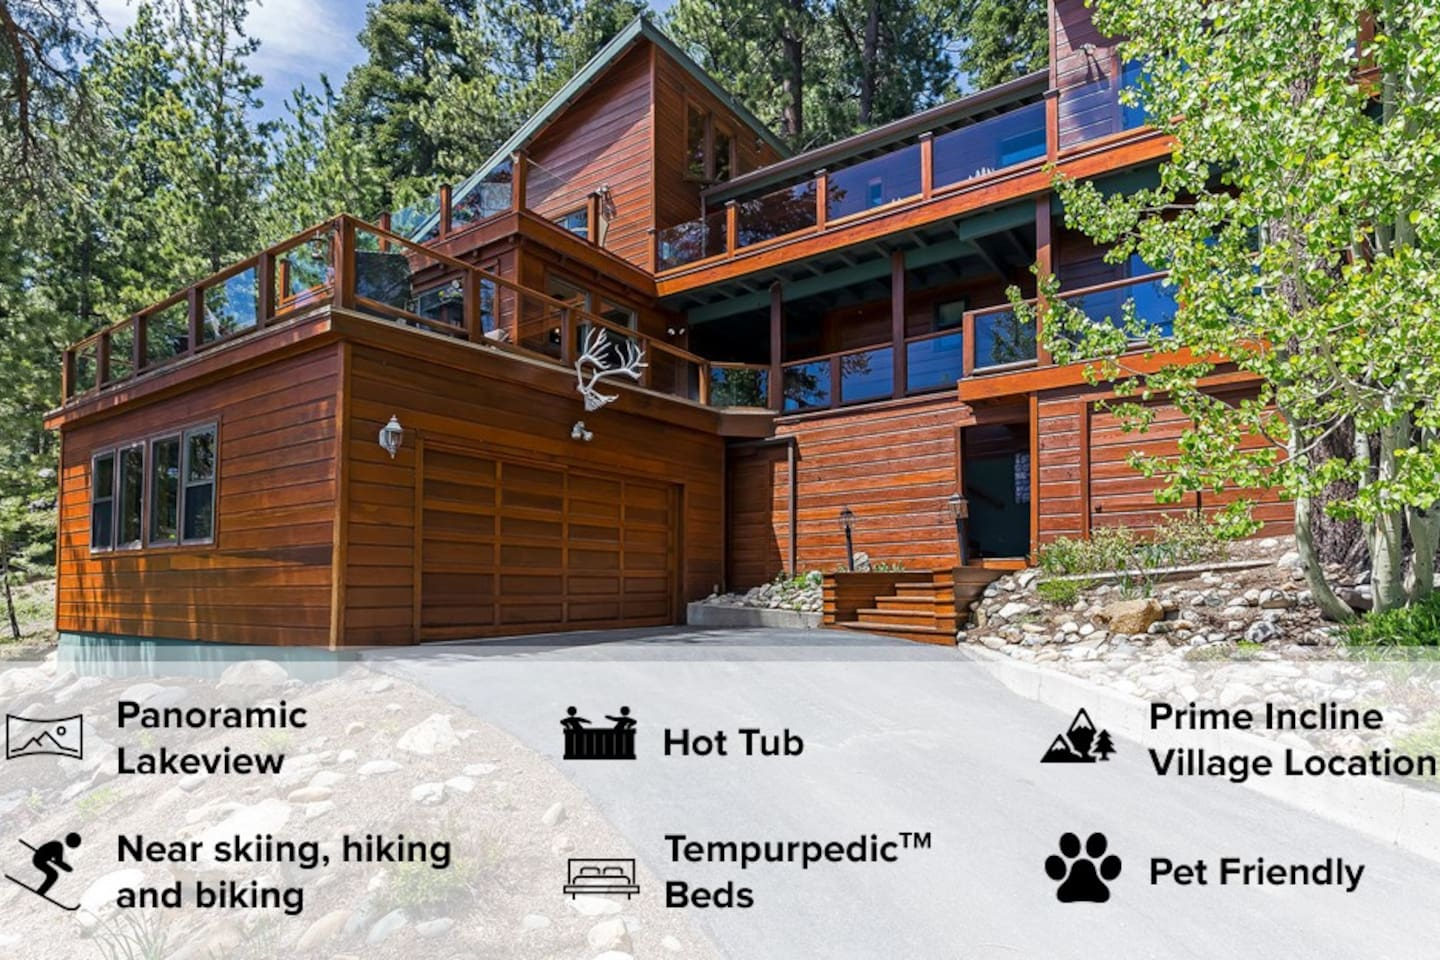 Enjoy a glass of wine while listening to the creek/nature on one of the many lake view decks. Easy access 2-car attached garage.